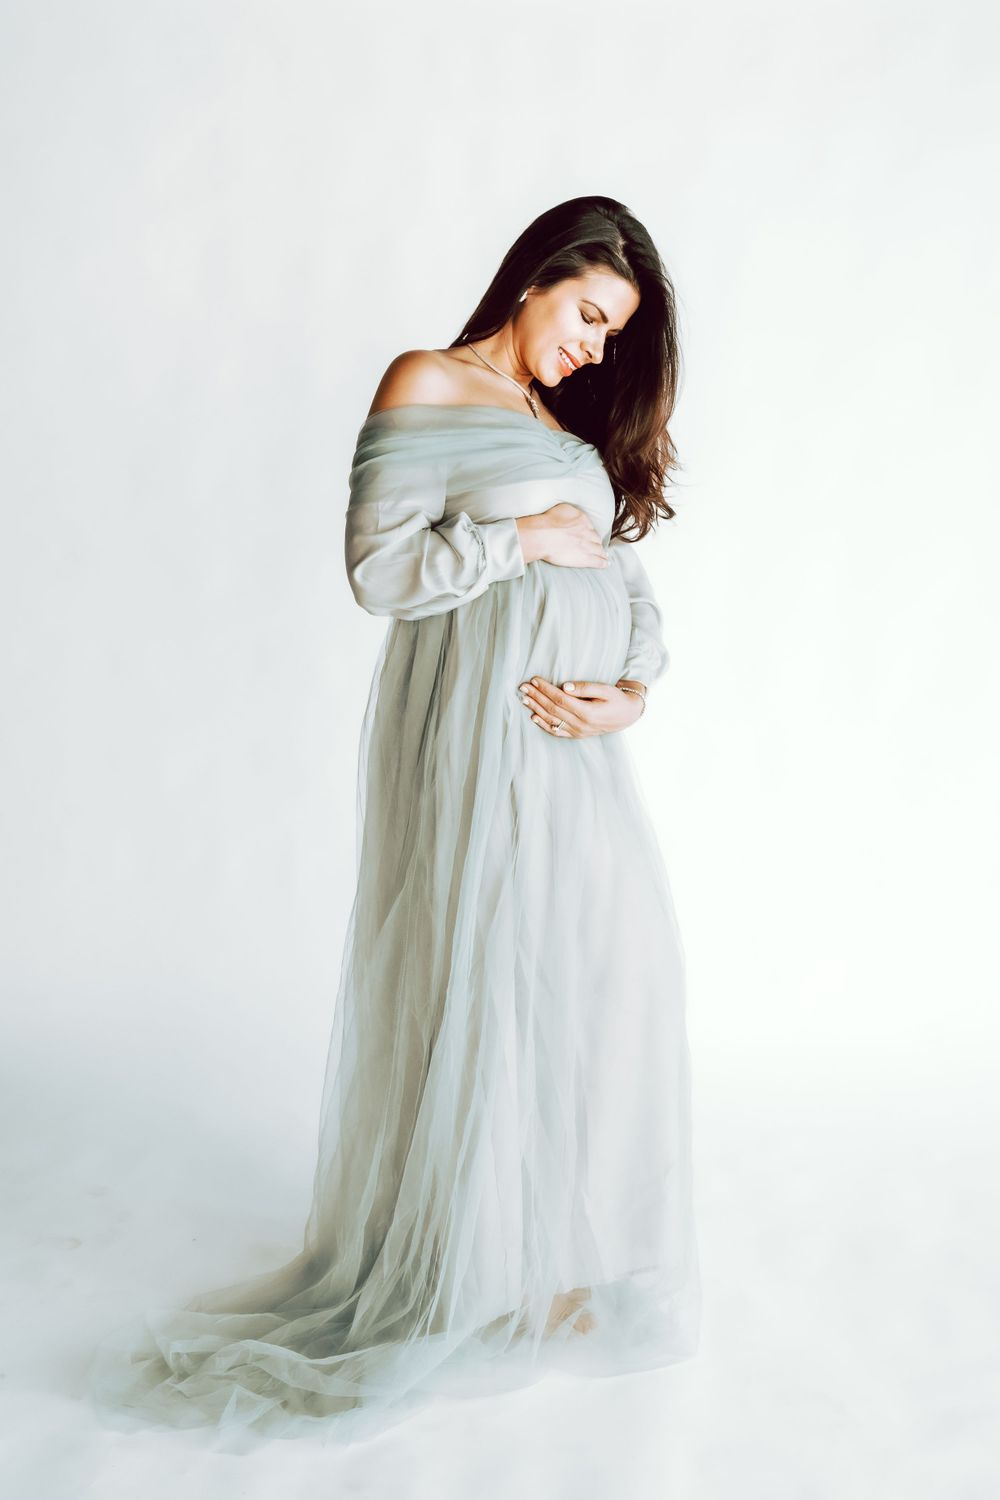 fabulous pregnant mom cradling her belly during her maternity session at a studio in Great Neck